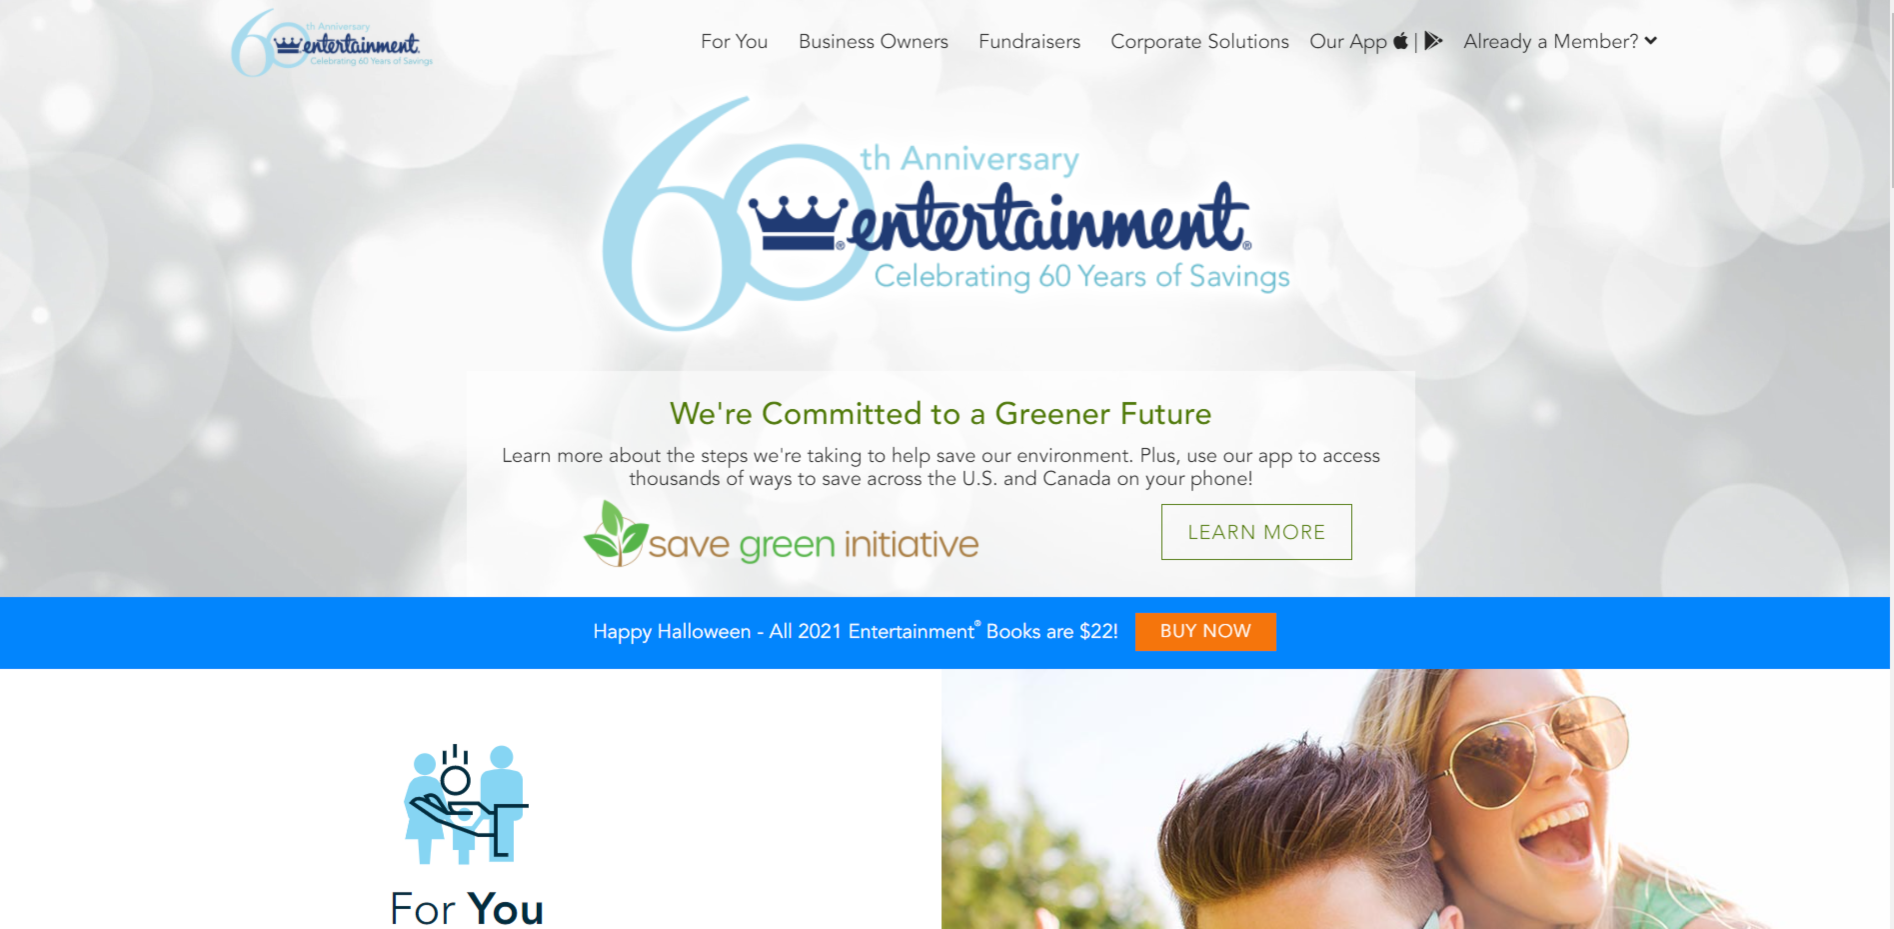 This is a screenshot taken from the Entertainment.com website showing they've been negotiating discount deals for 60-years